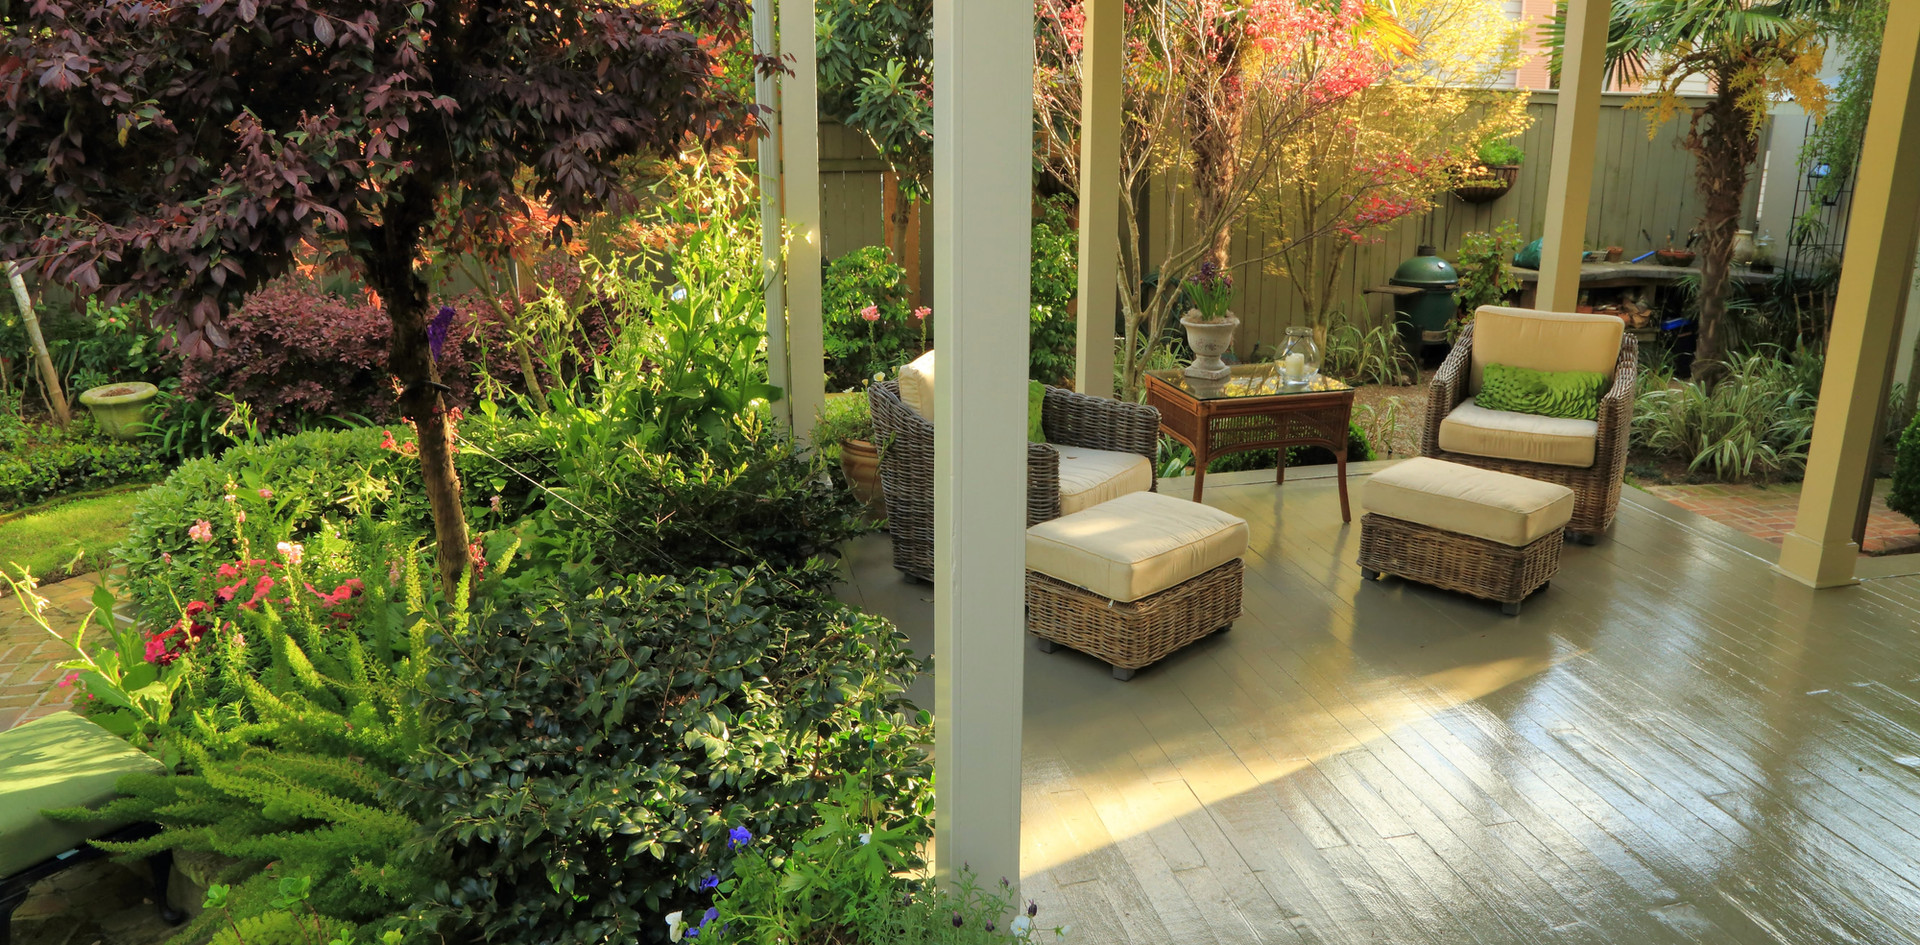 Backyard landscaping and planting design